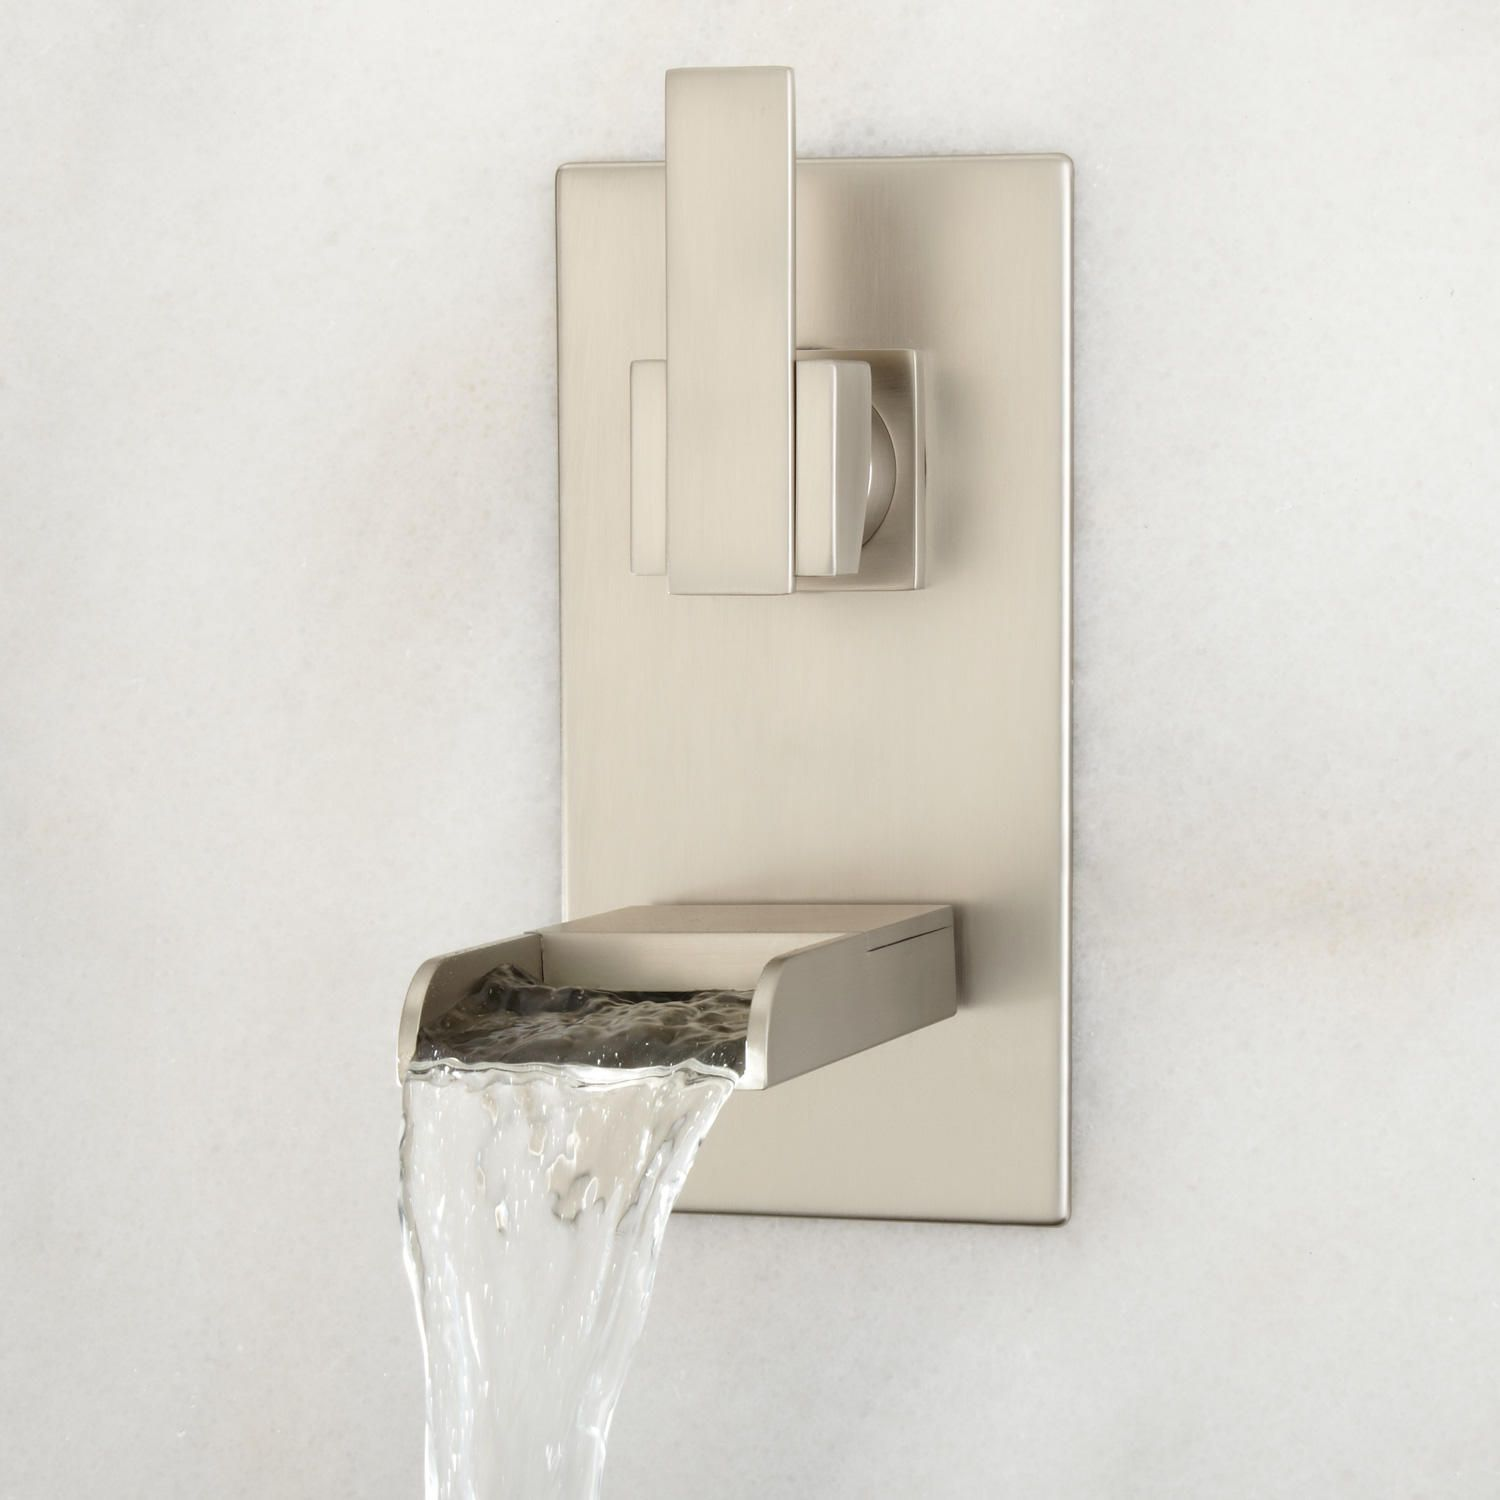 Willis Wall Mount Bathroom Waterfall Faucet No Overflow